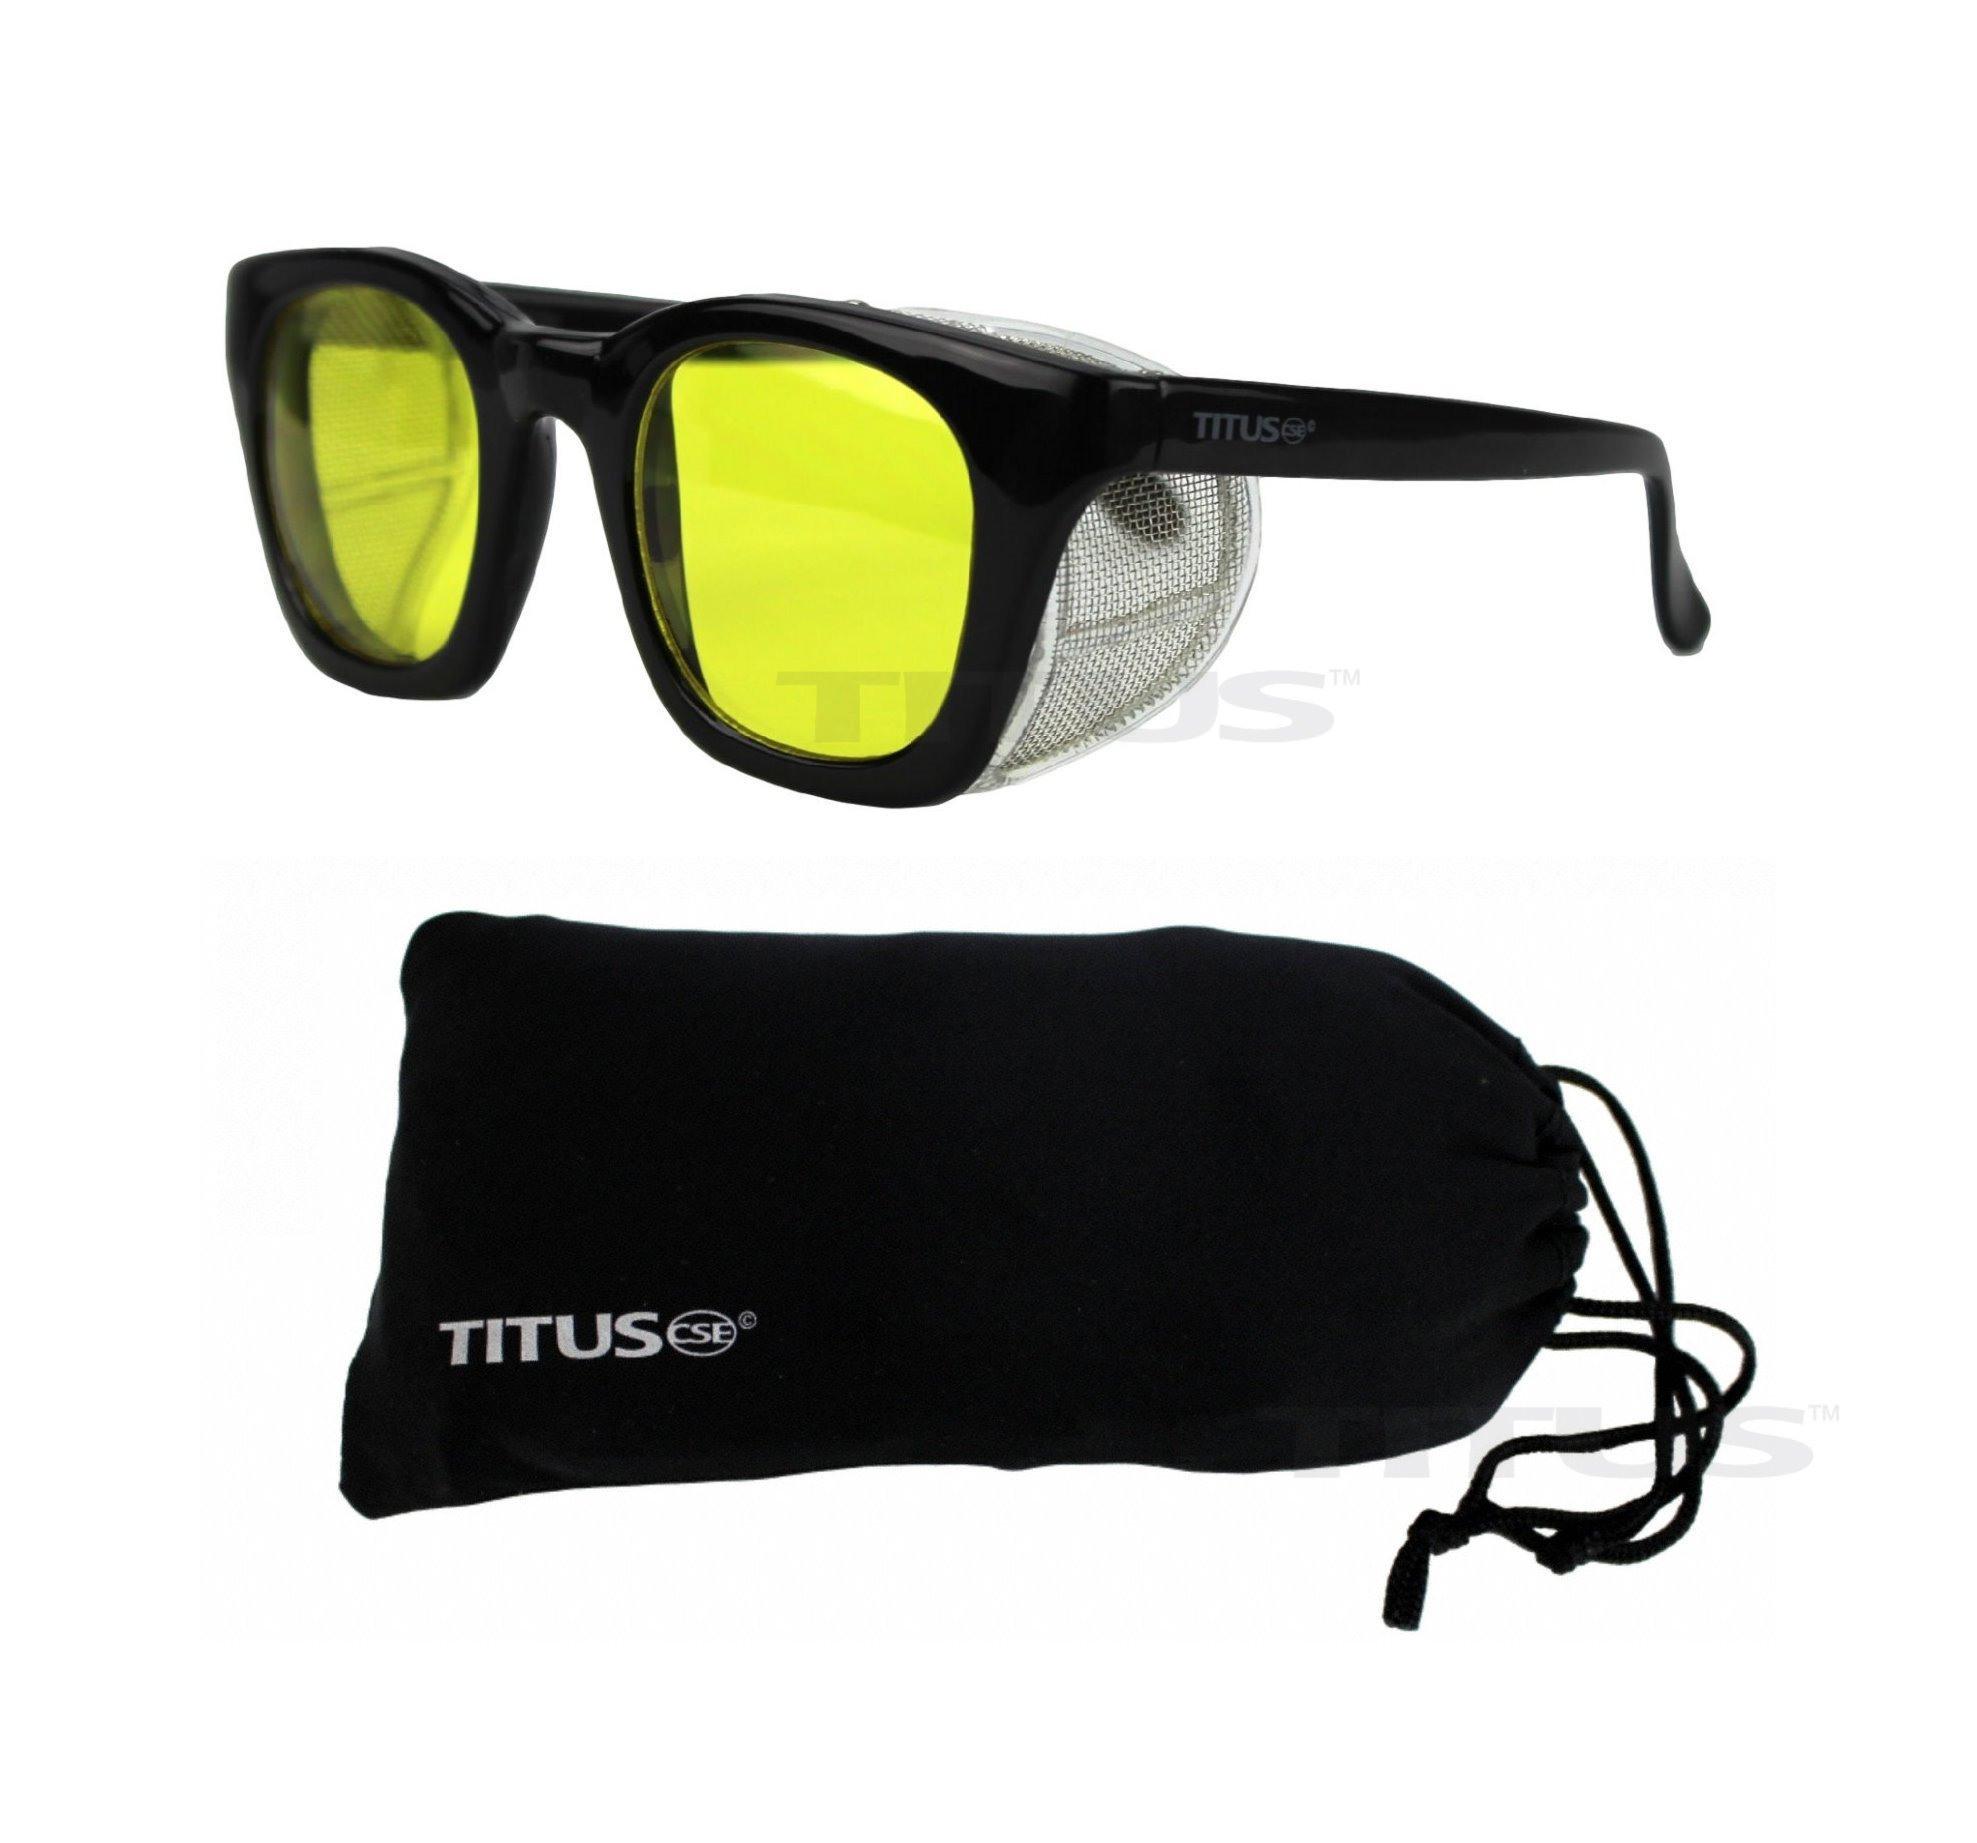 Retro Style Safety Glasses with Side Shield (With Pouch, Yellow Lens - Gloss Frame)